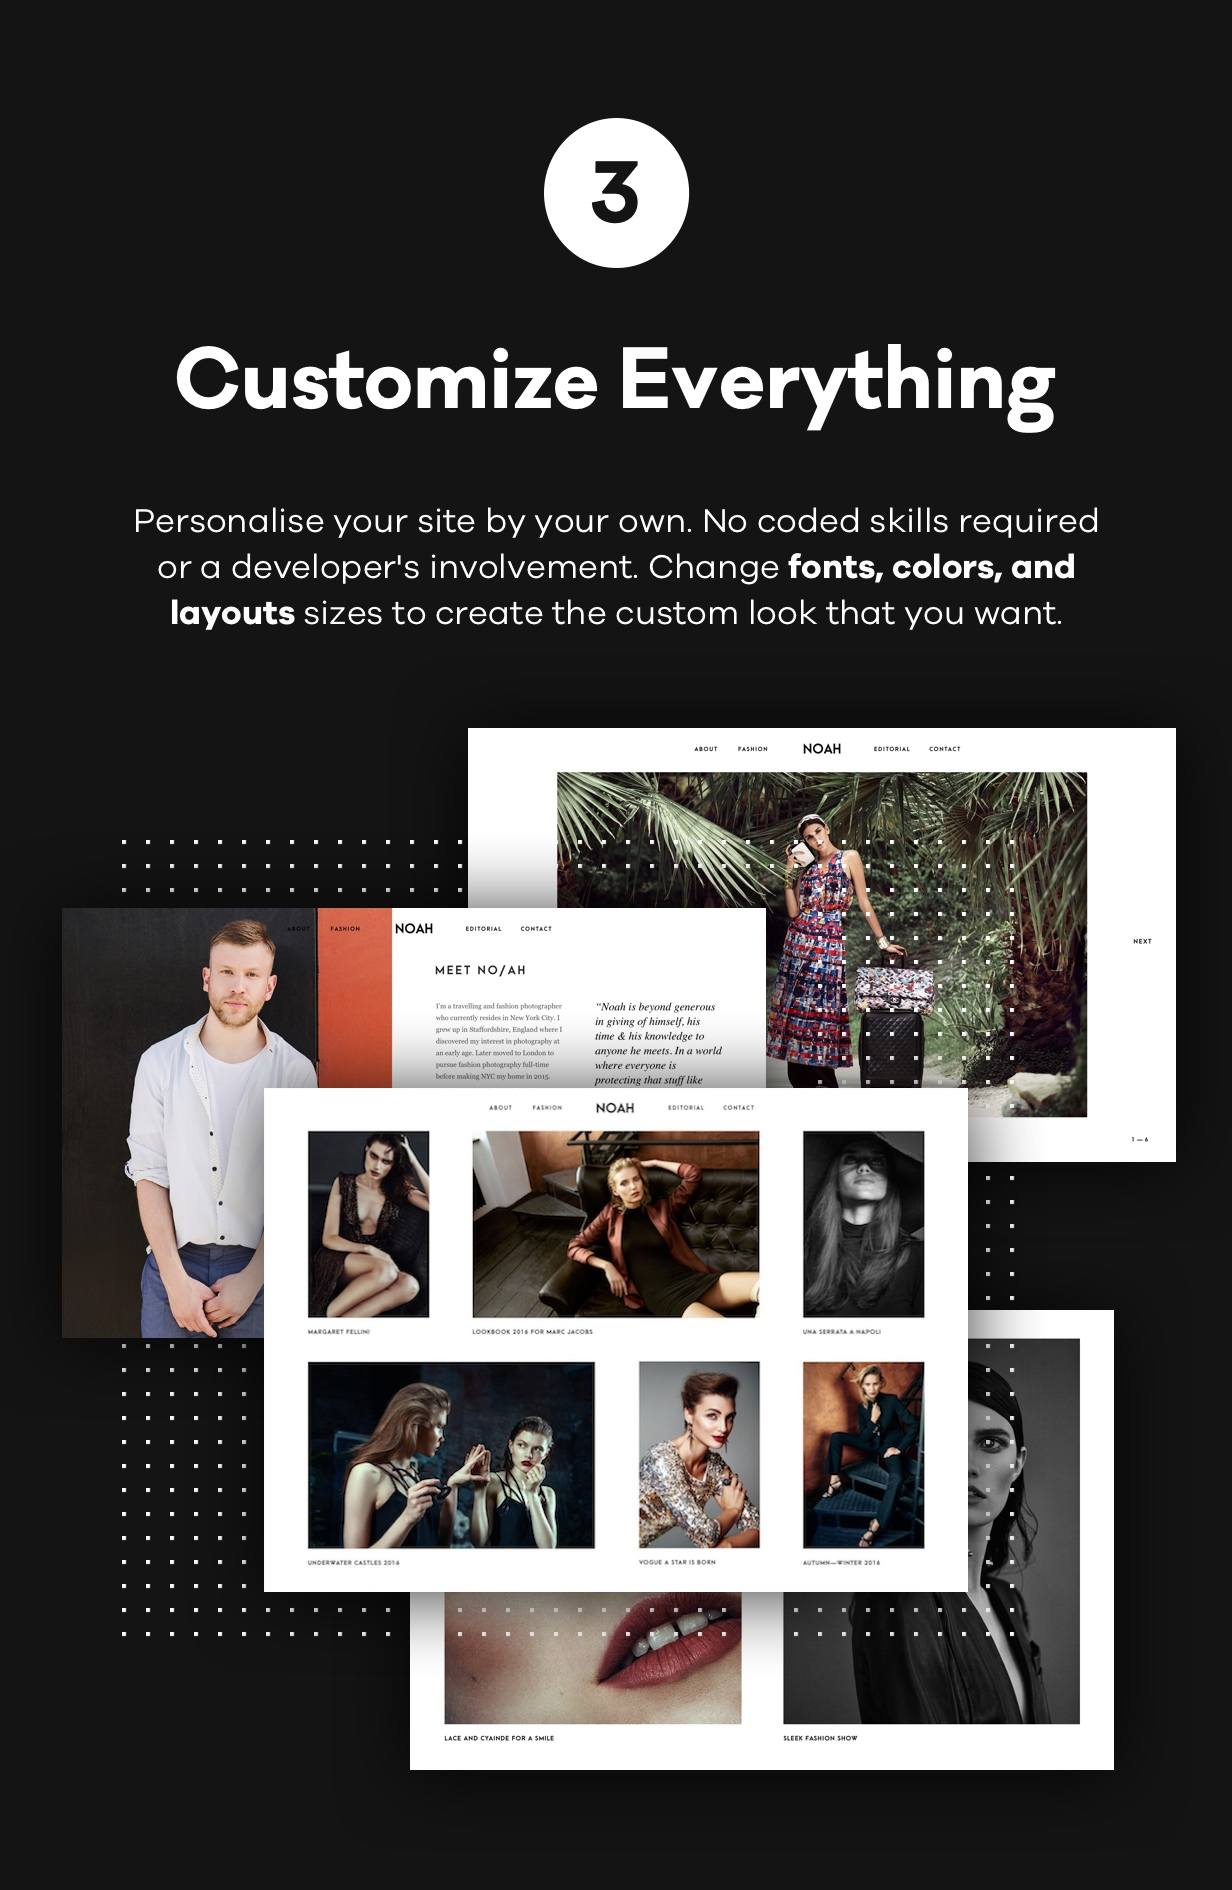 NOAH - A Witty Photography WordPress Theme - 4